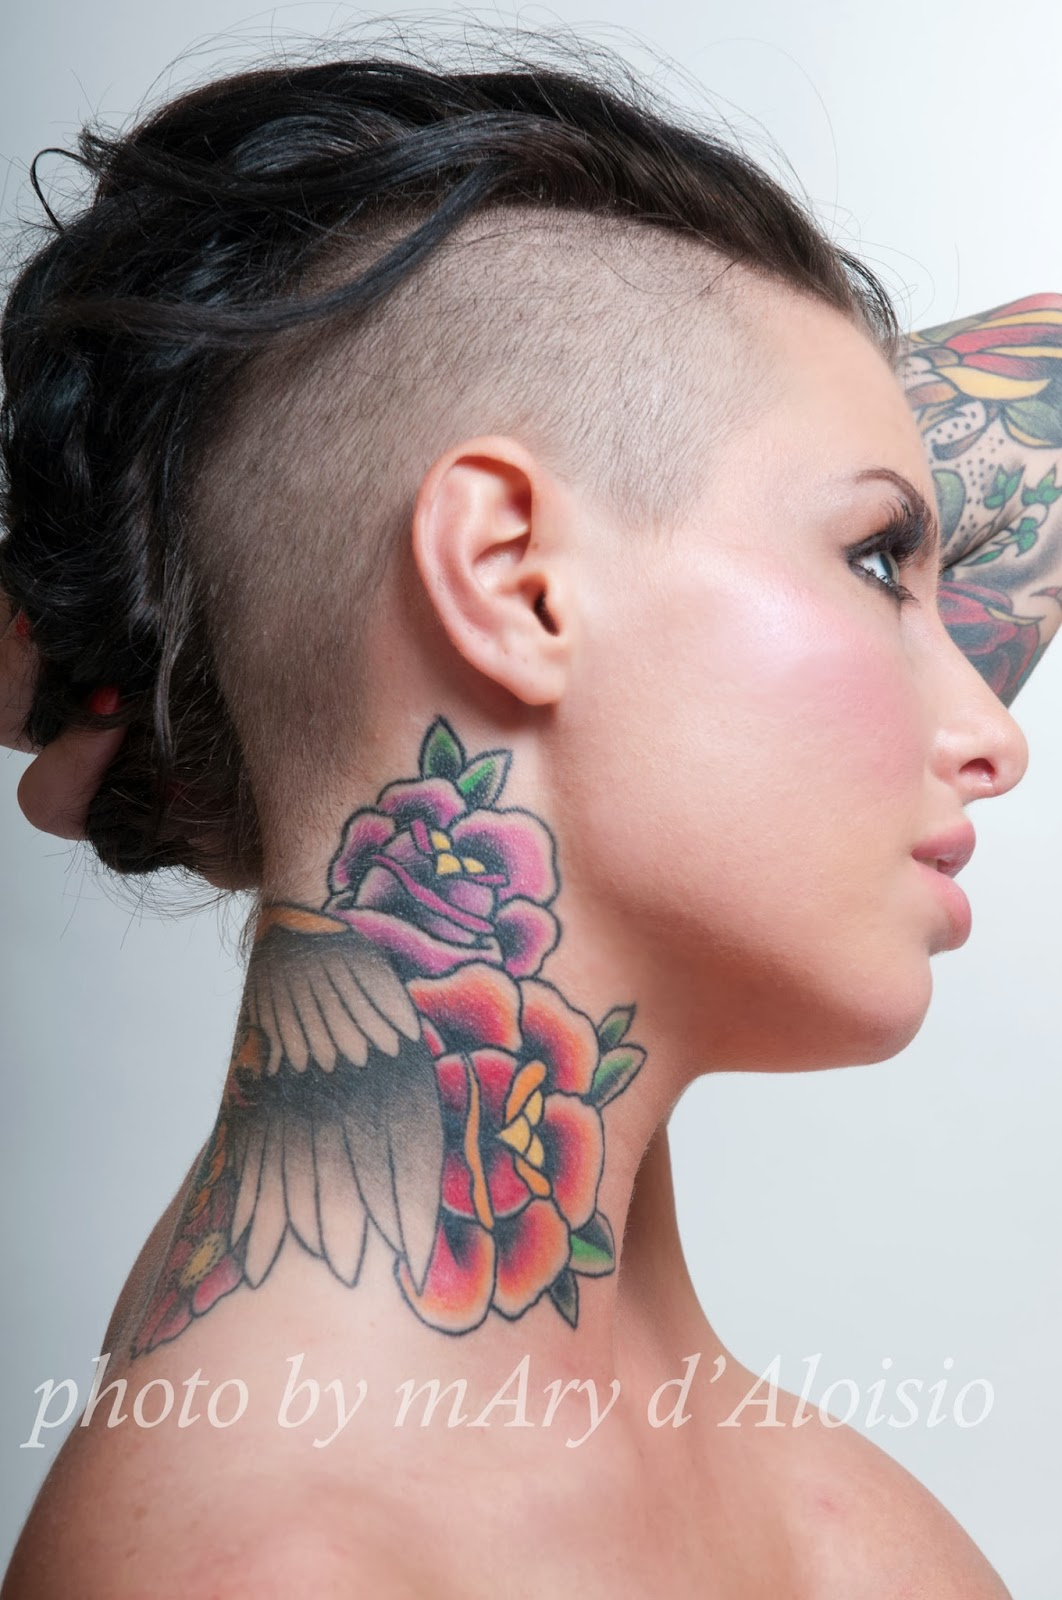 Quixotic as fuddddge christy mack for ink addict for Sex porn tattoo